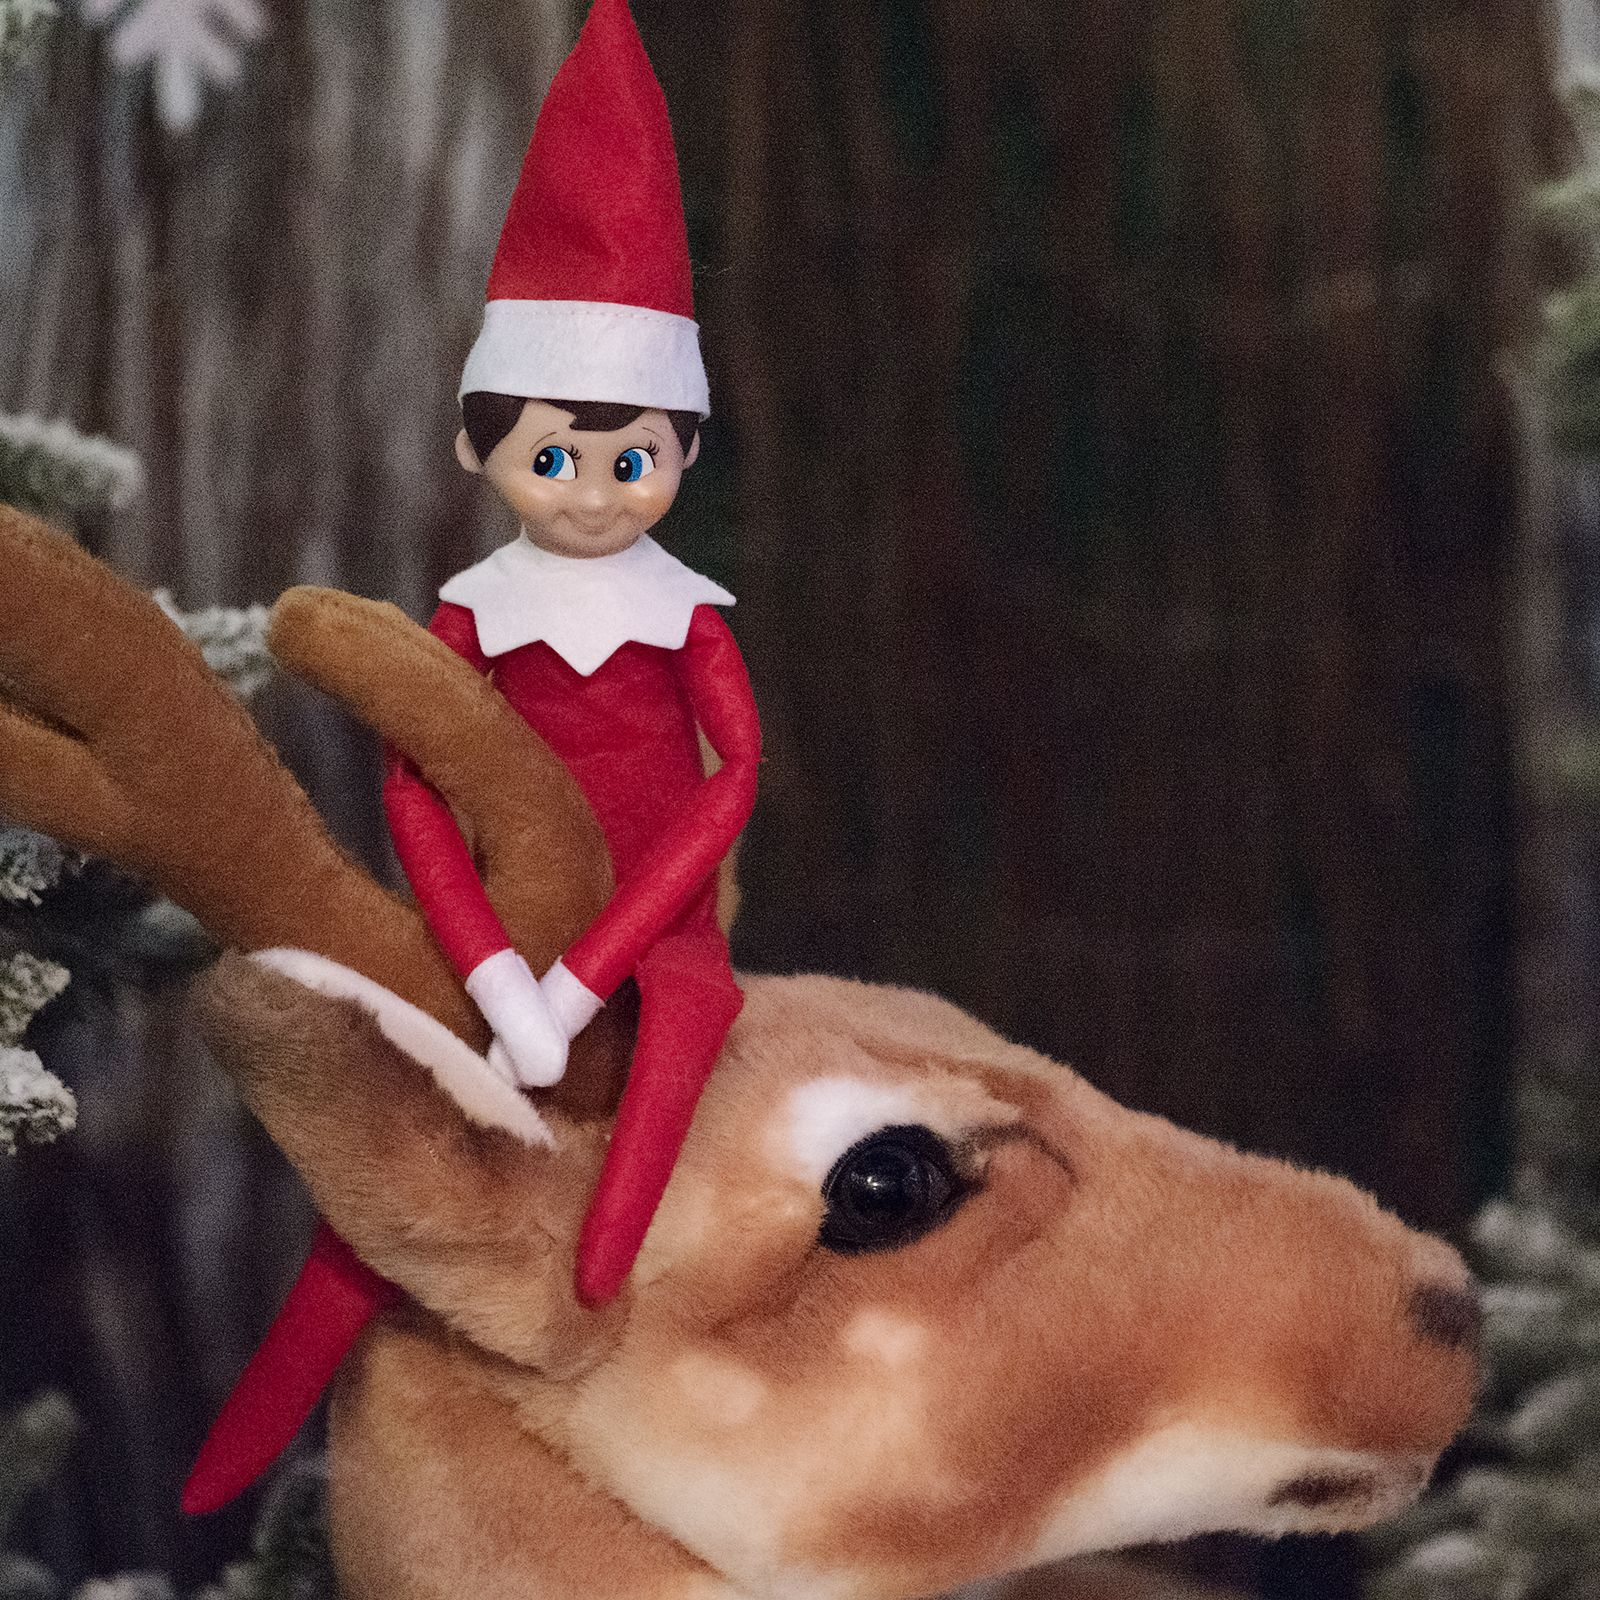 Riding through the forest on one of the reindeer Elf on the shelf